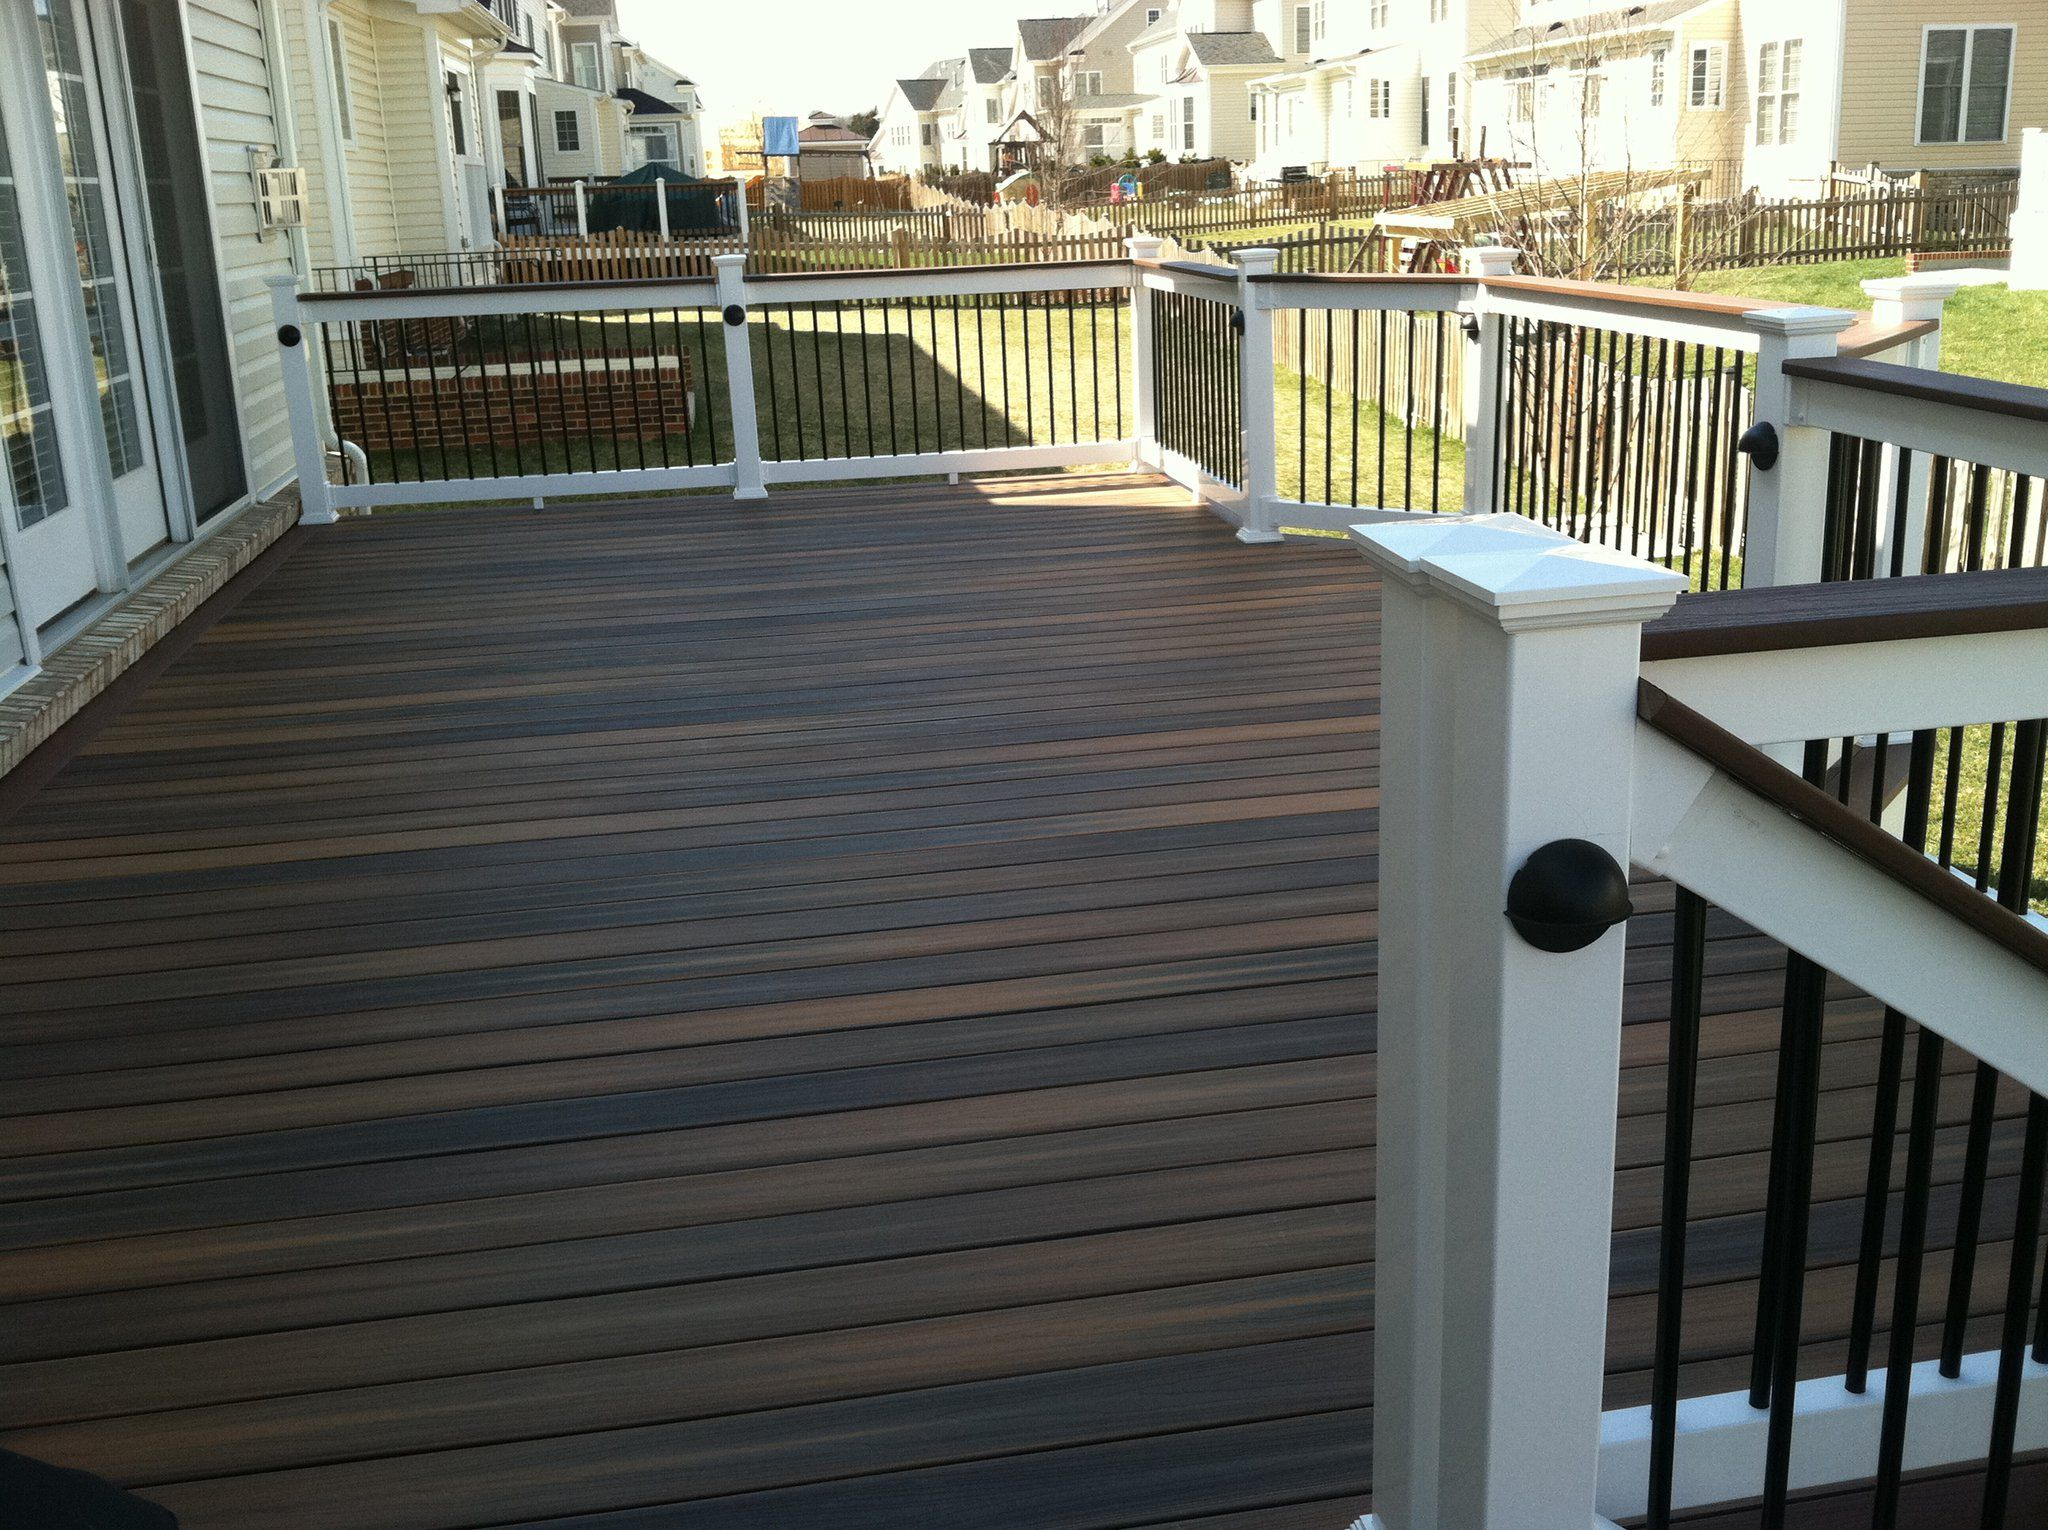 A Fiberon Deck With Shoreline Series 200 Railings With Black Balusters In Brambleton By Blue